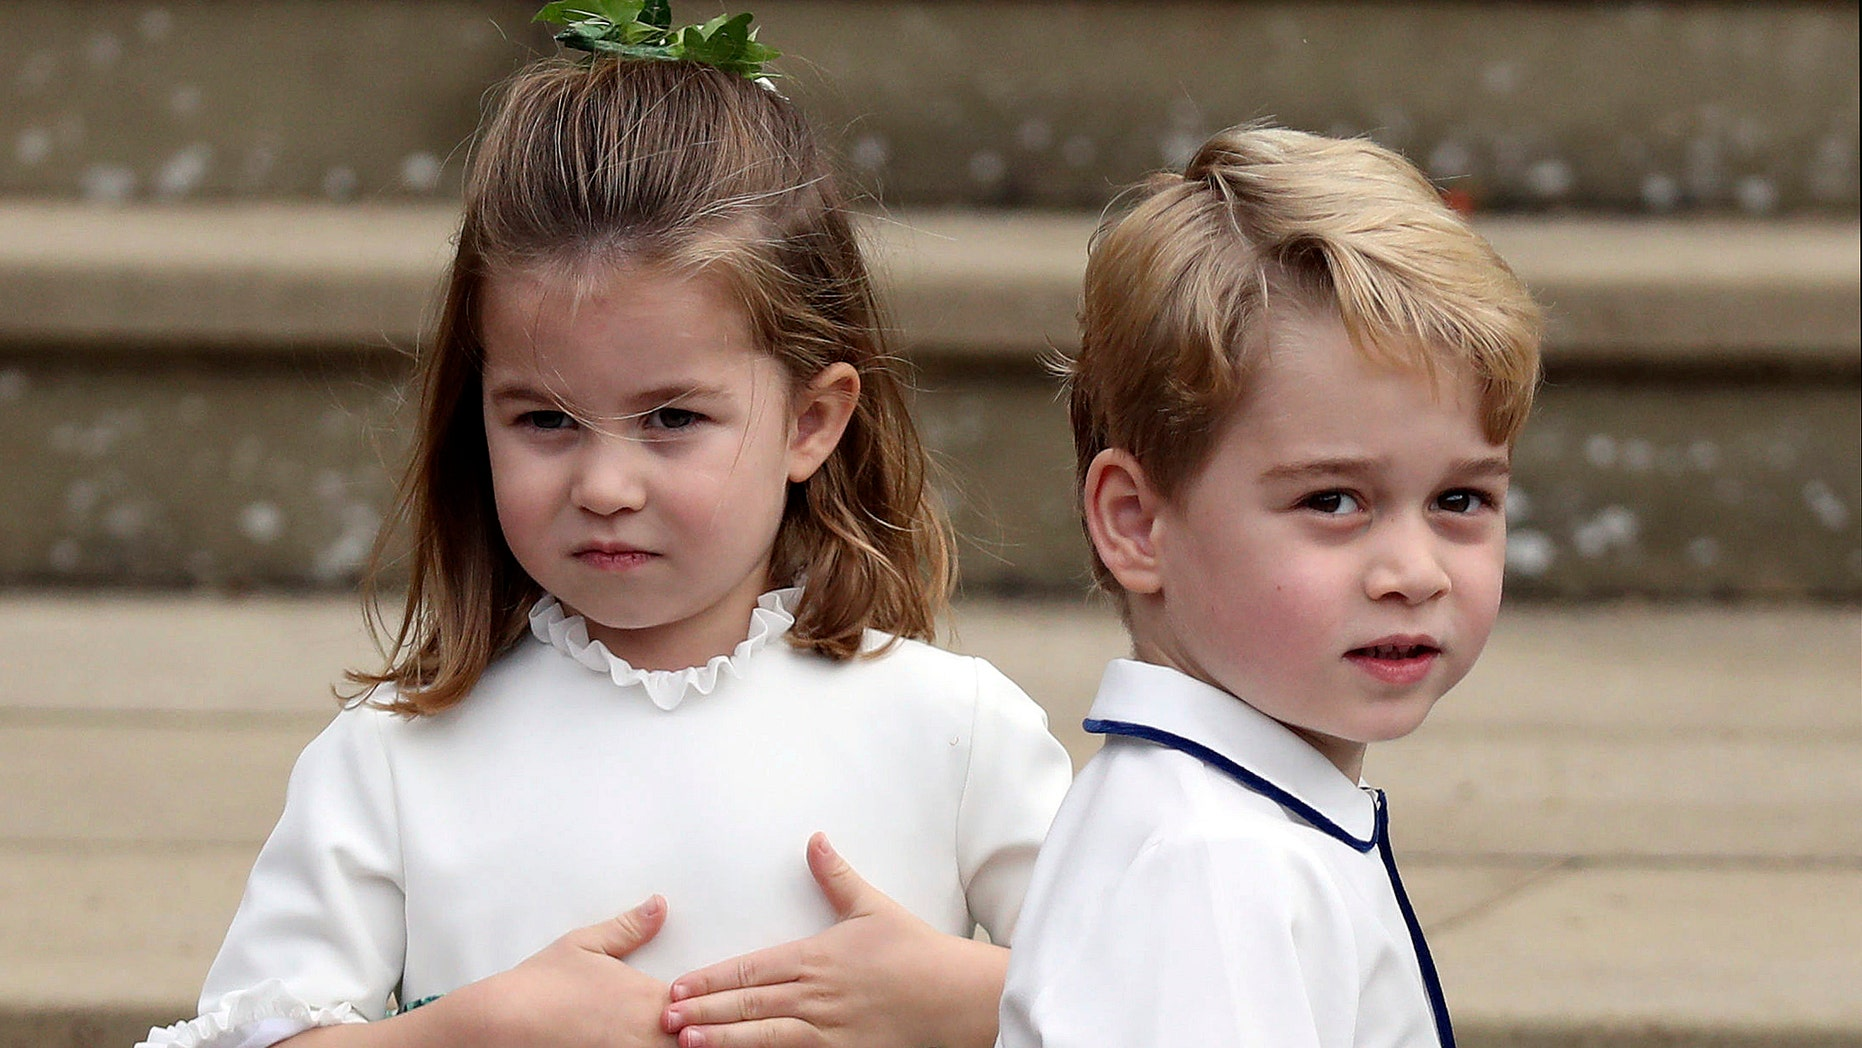 Why Everyone Is Talking About THIS photo Of Princess Charlotte